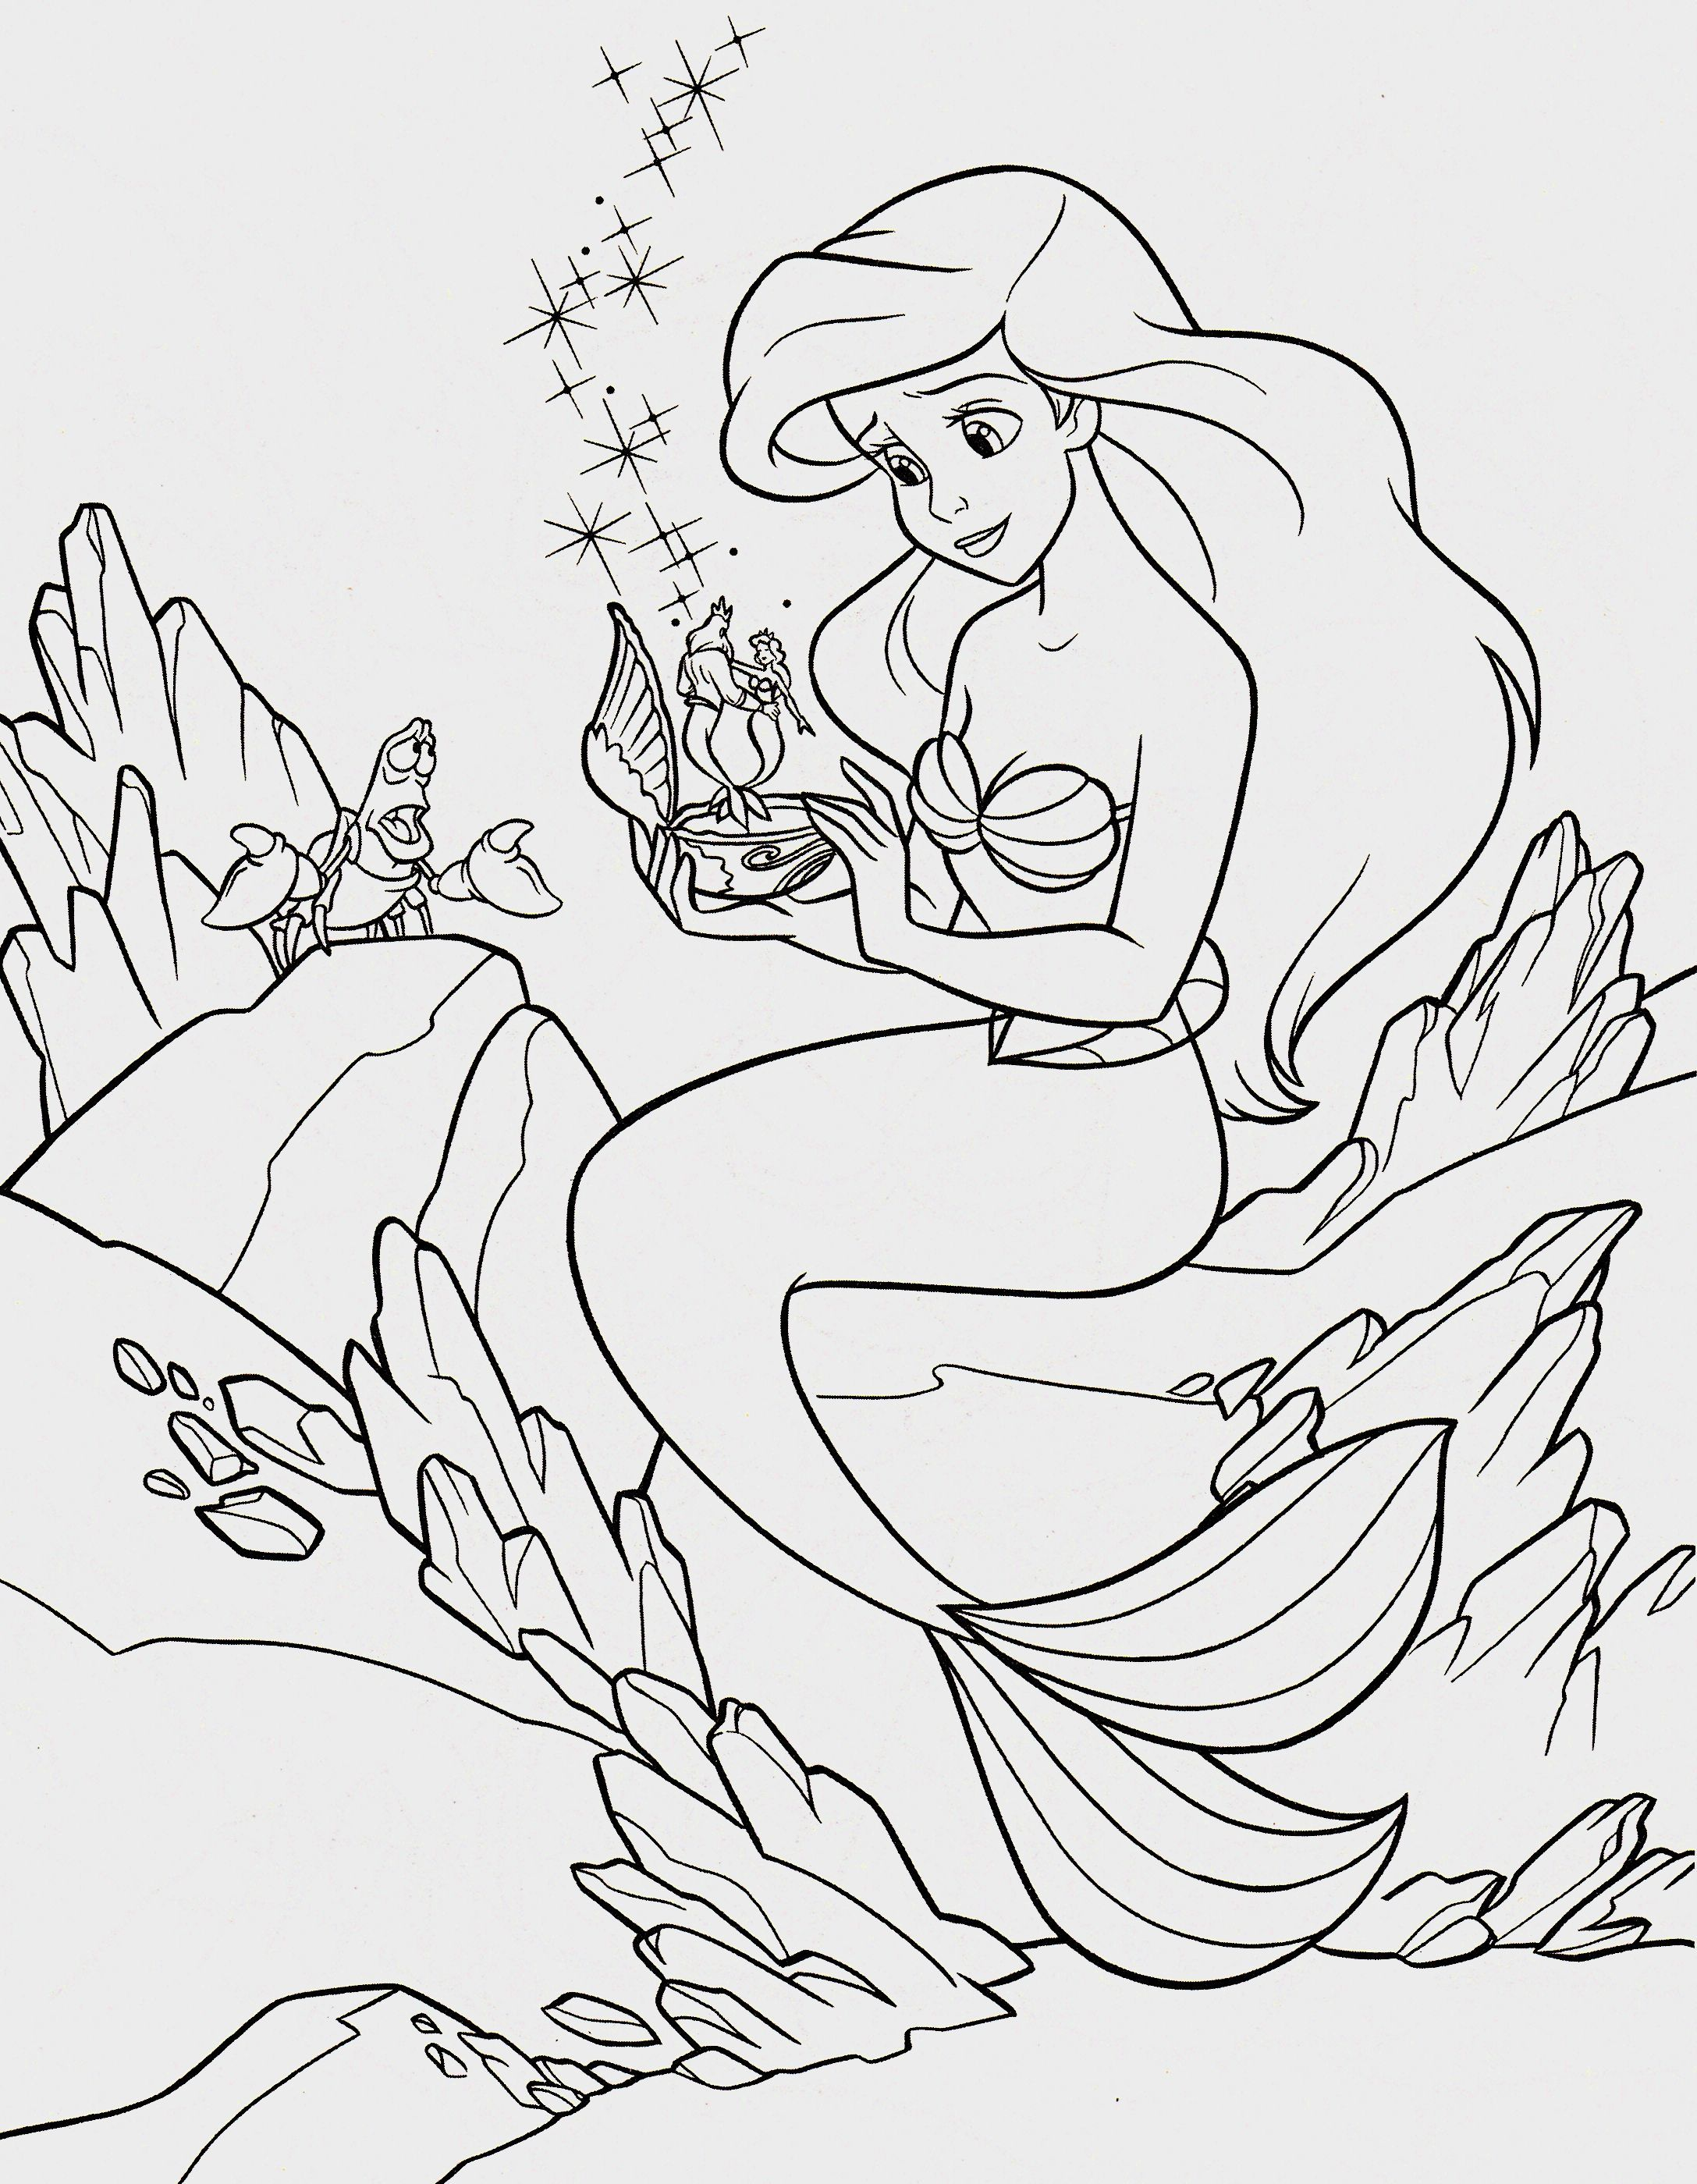 Disney Ariel Coloring Pages 2175 2799 High Definition Wallpaper Background Wal Ariel Coloring Pages Princess Coloring Pages Disney Princess Coloring Pages